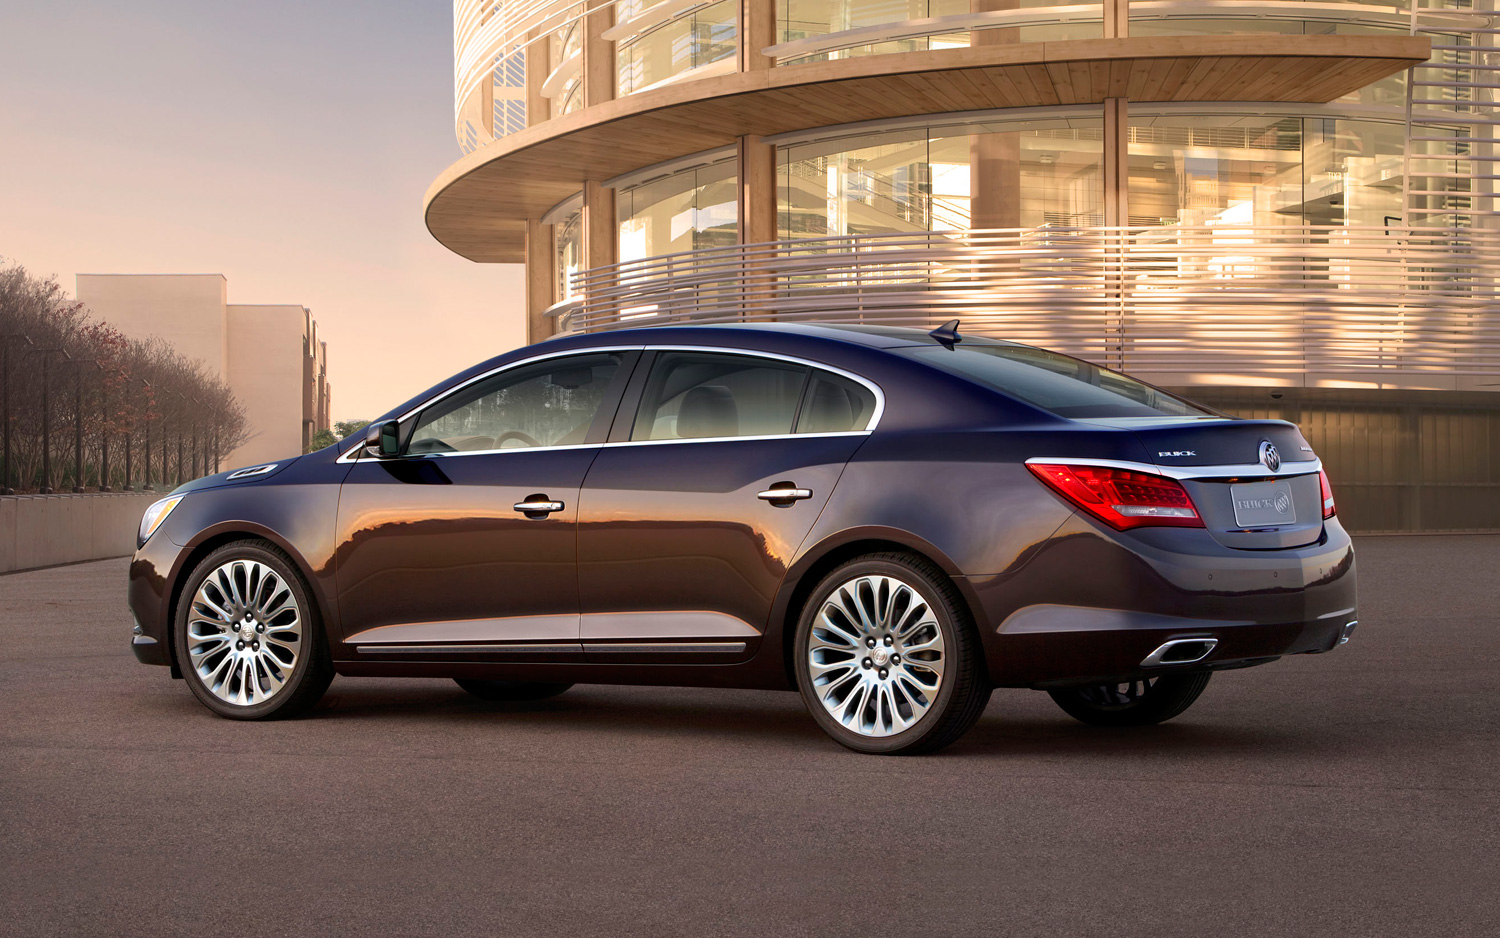 Buick LaCrosse: Parking over Things That Burn